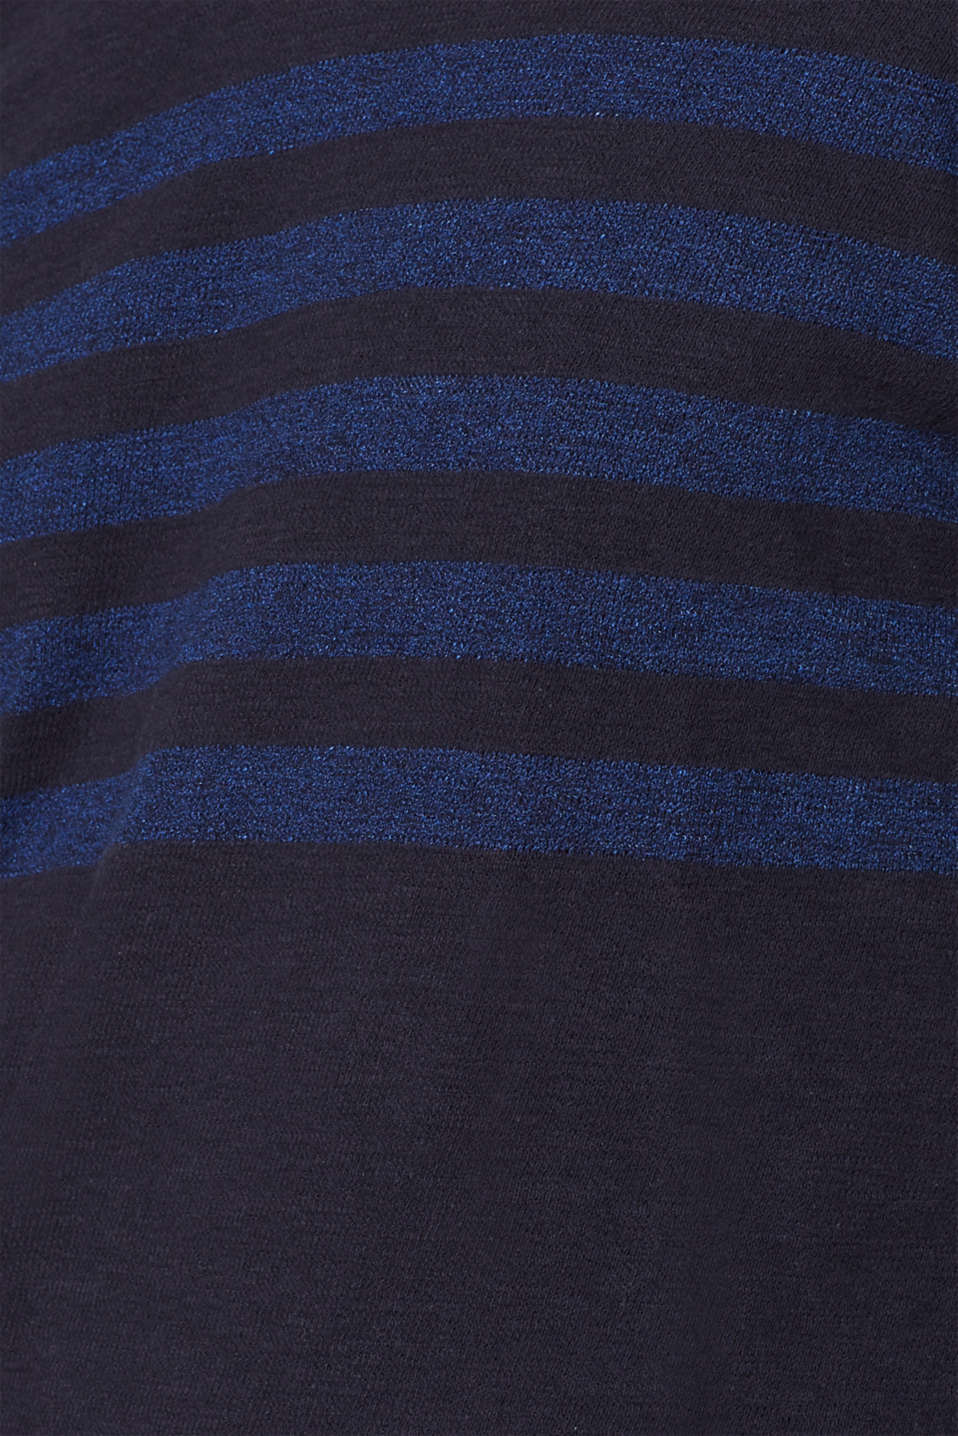 Jersey long sleeve top with stripes, NAVY, detail image number 4